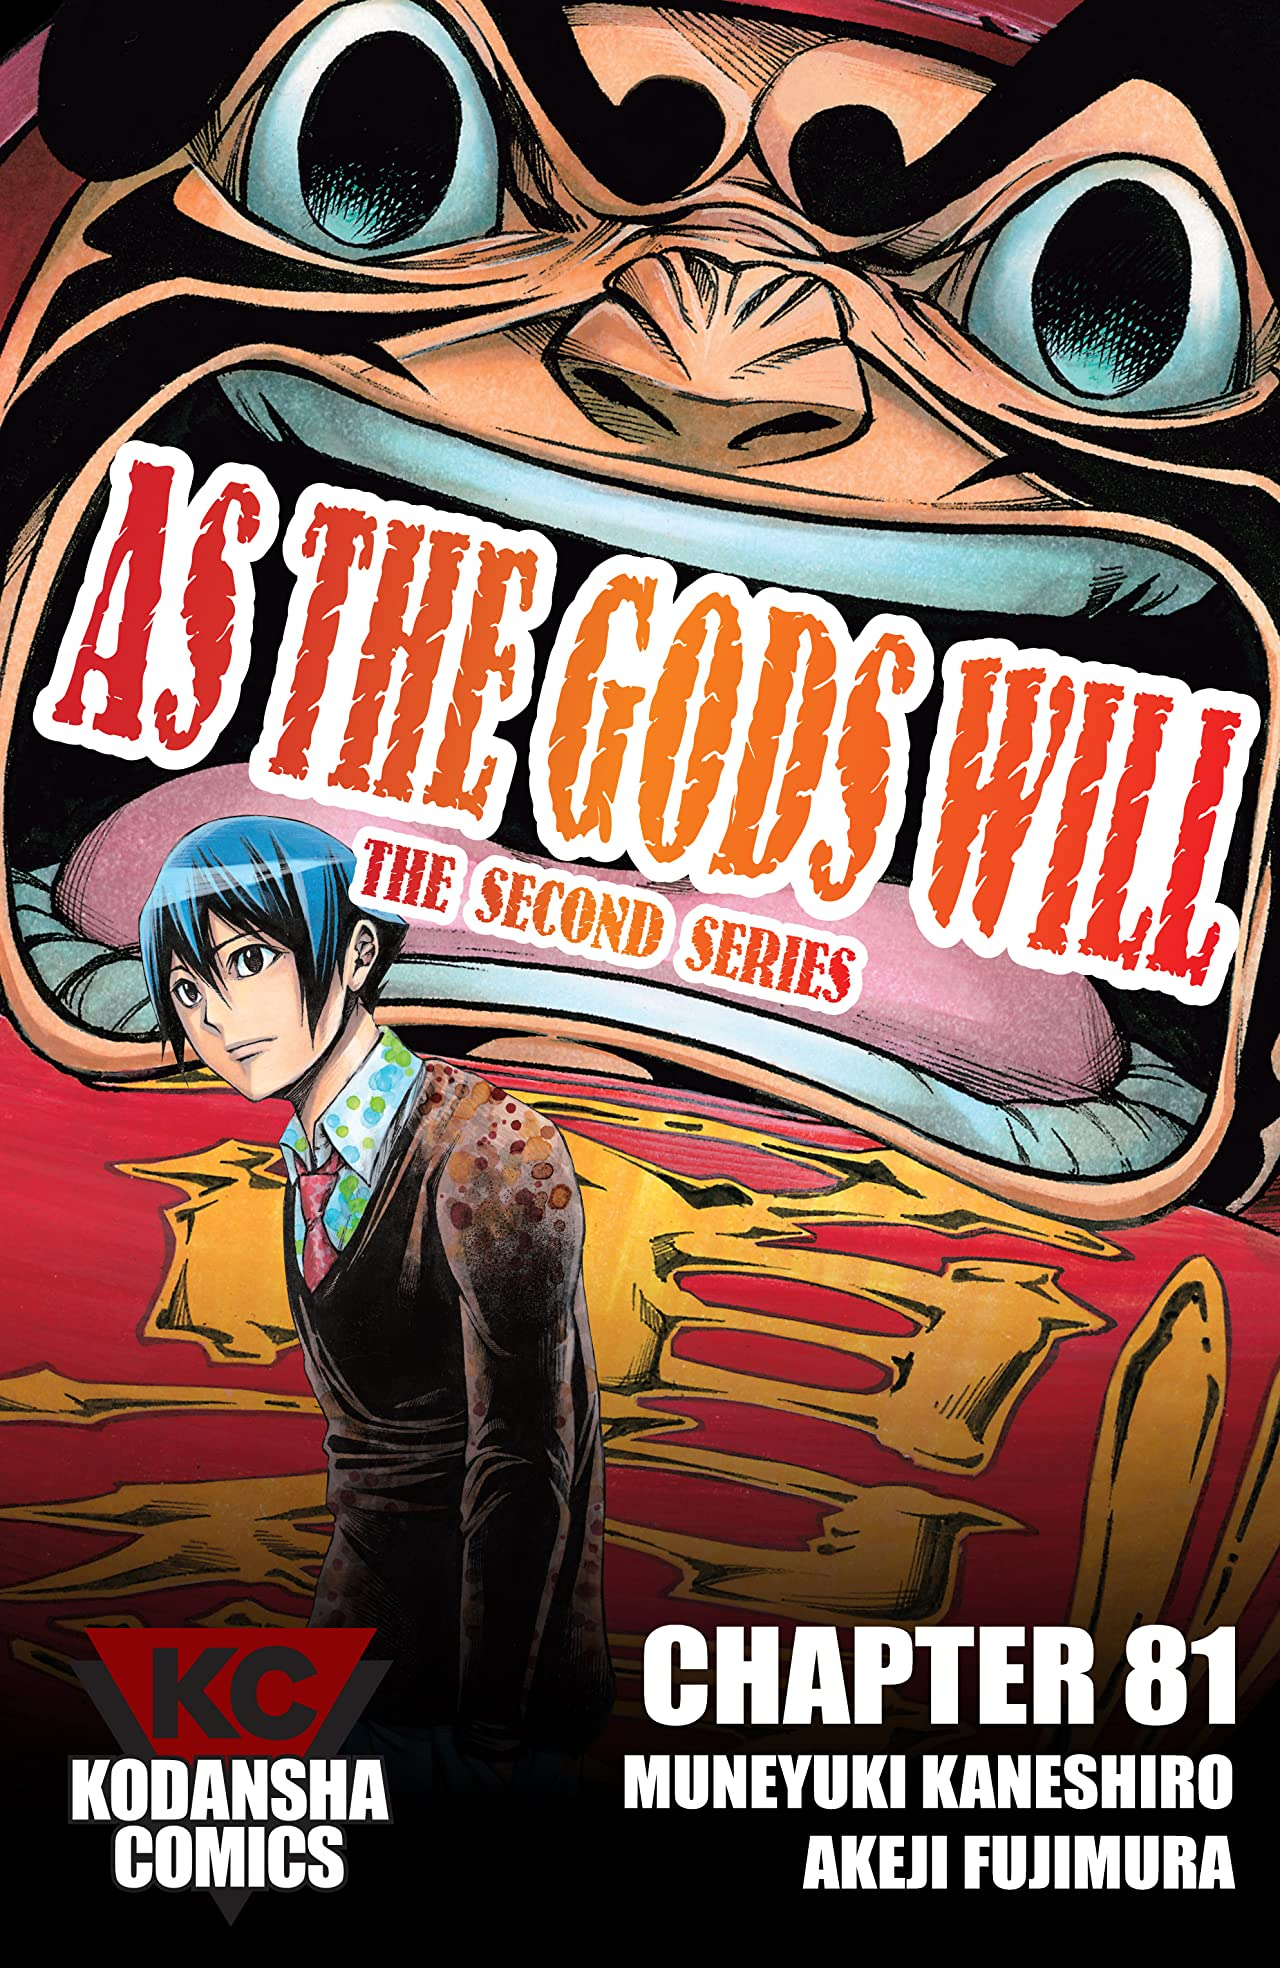 As The Gods Will: The Second Series #81